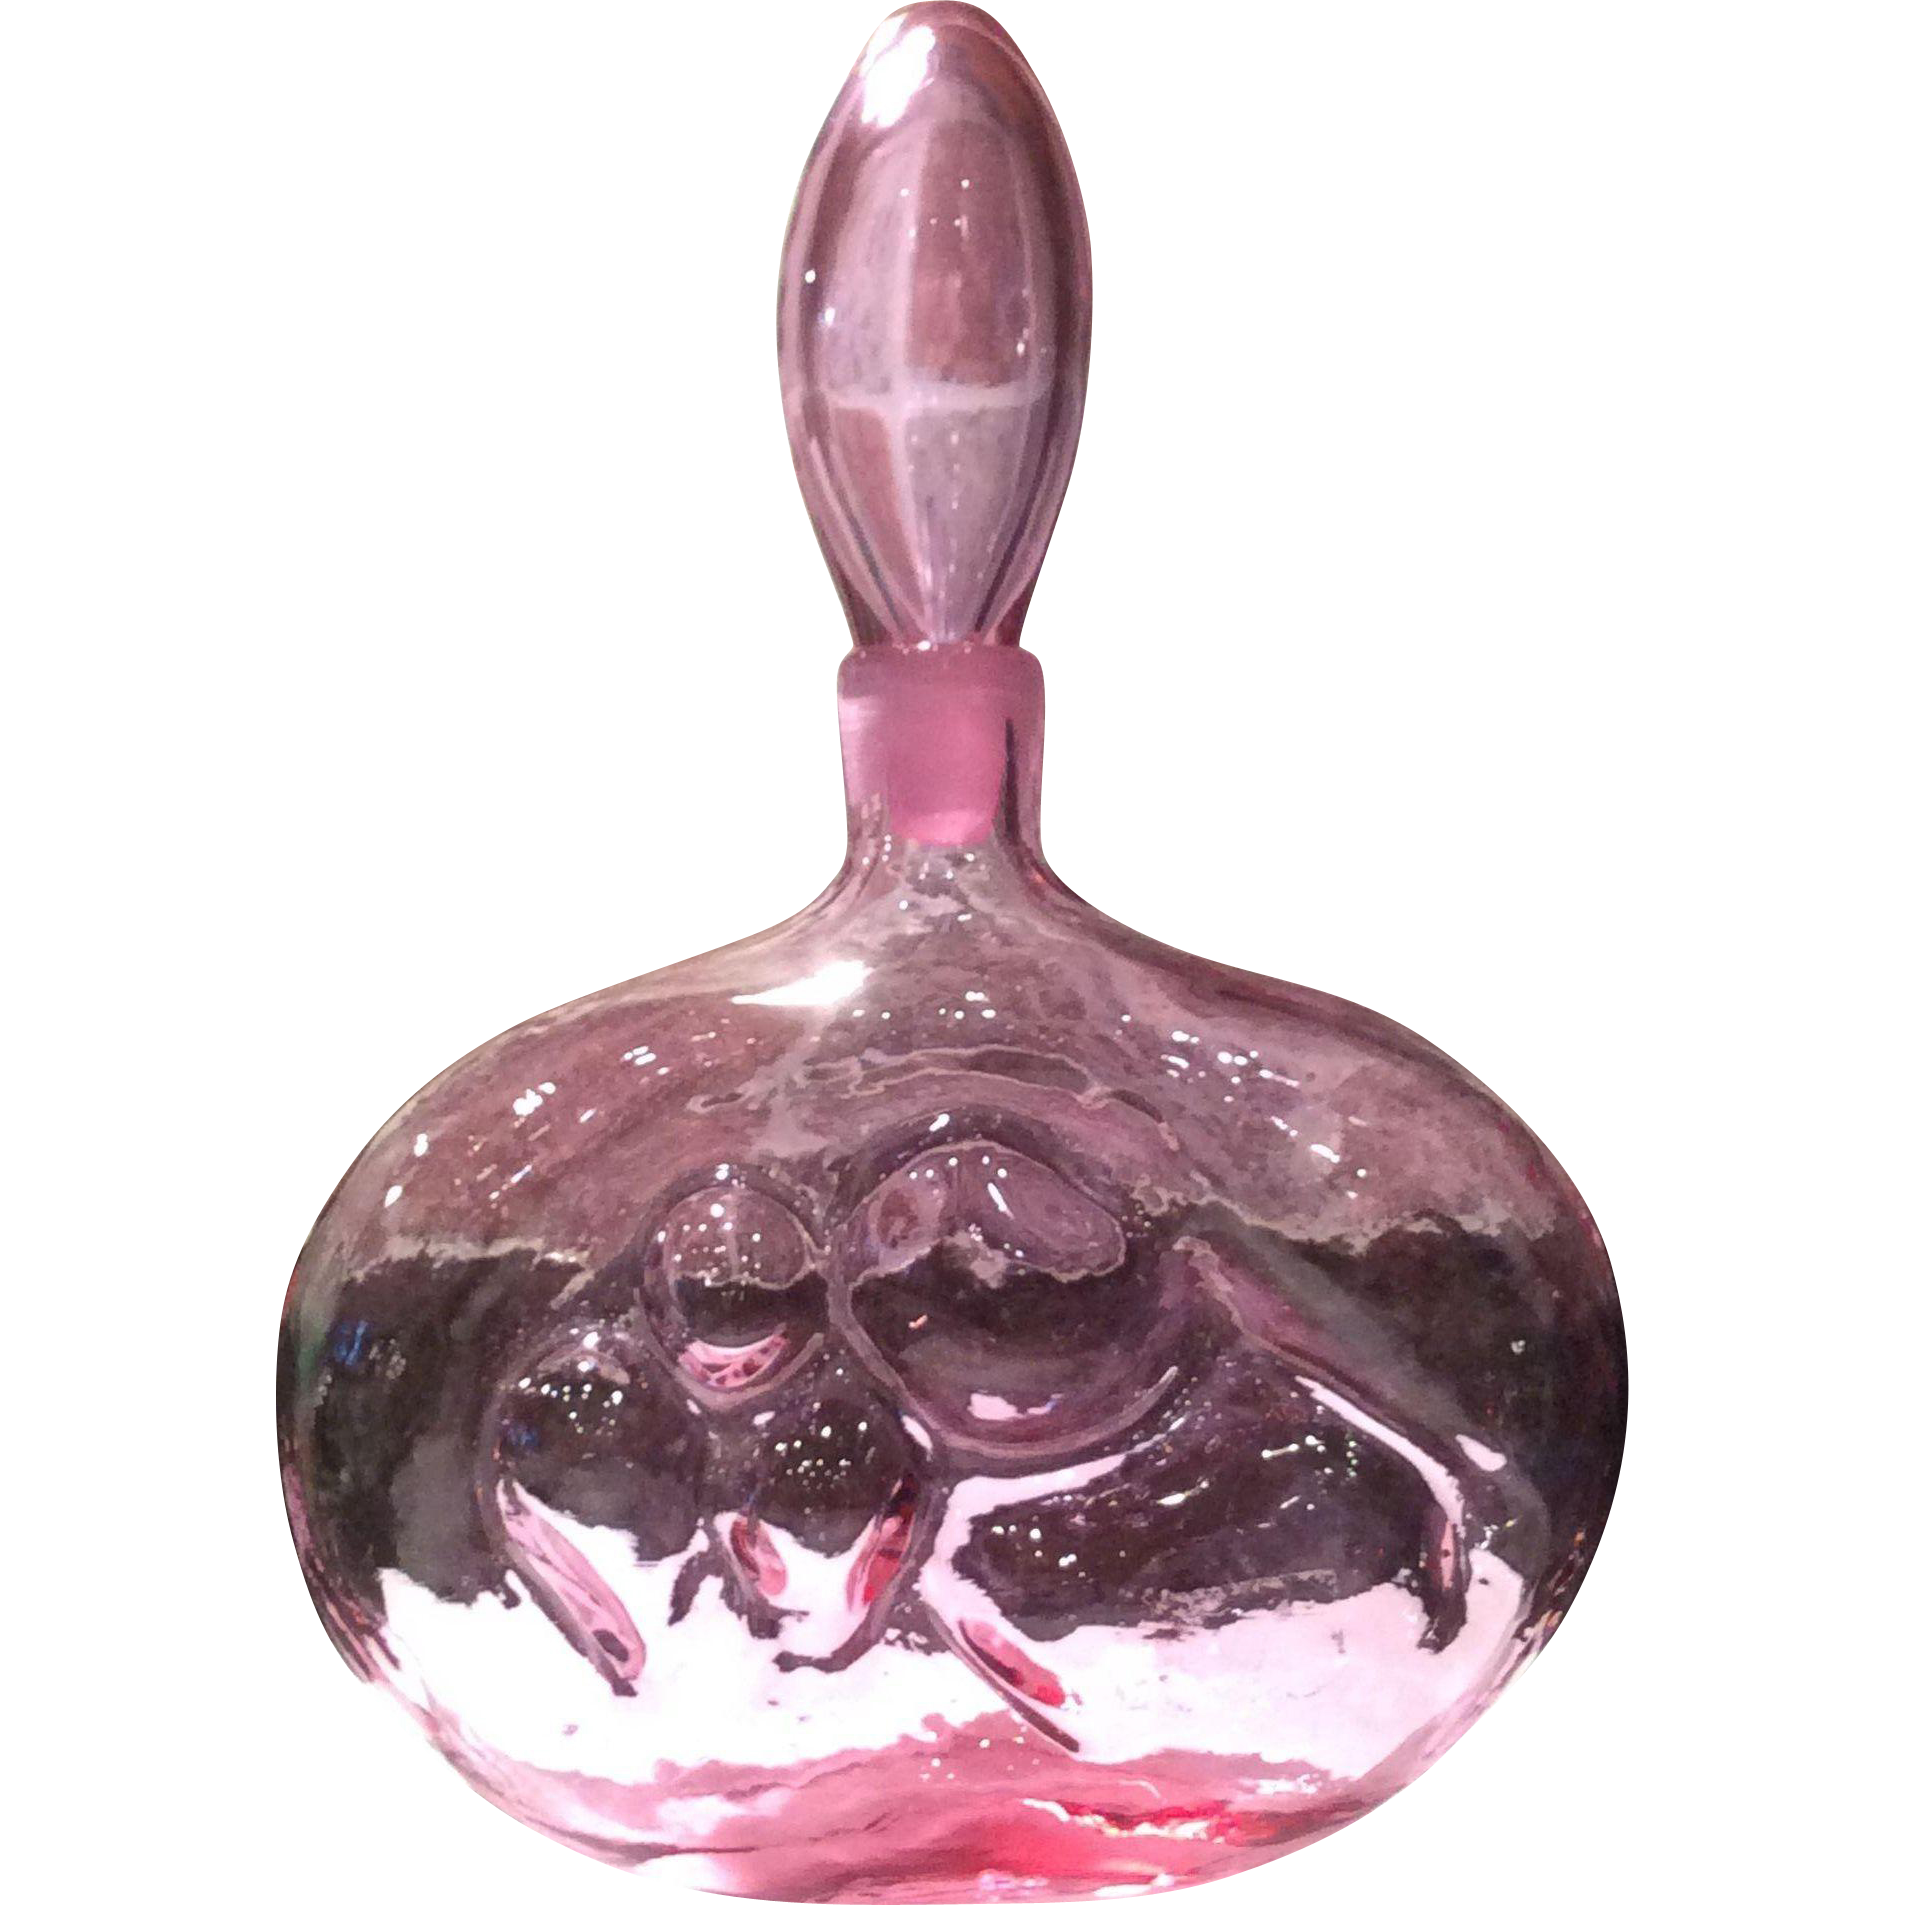 Blenko Rose' #6310 Decanter, Design 10, by Wayne Husted